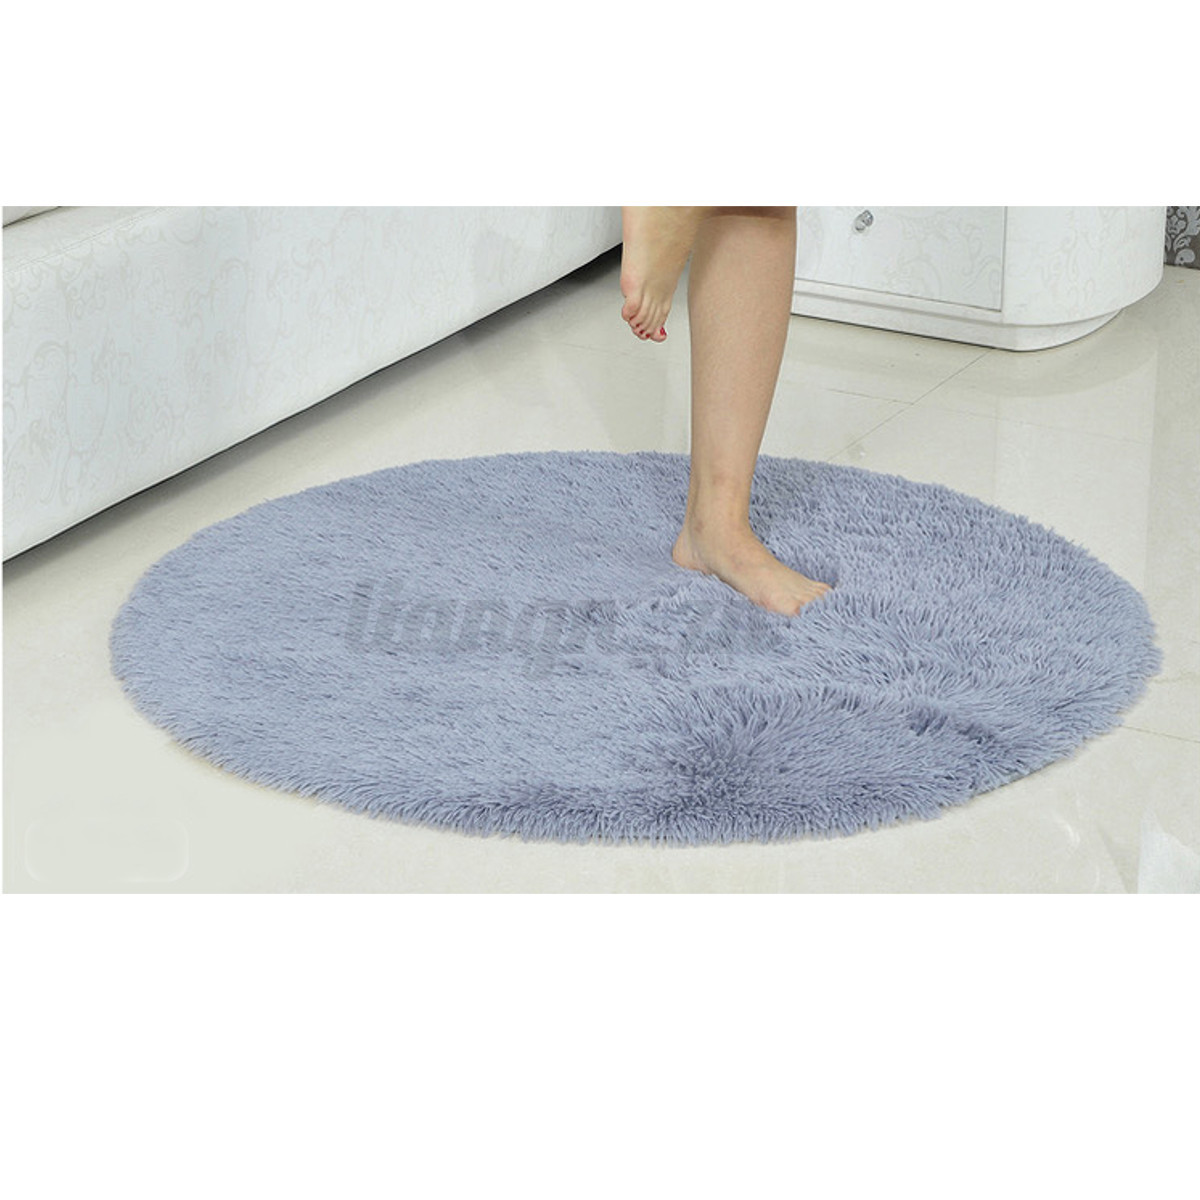 rond tapis salle de bain chambre peluche antid rapant mat absorbant yoga 40cm ebay. Black Bedroom Furniture Sets. Home Design Ideas